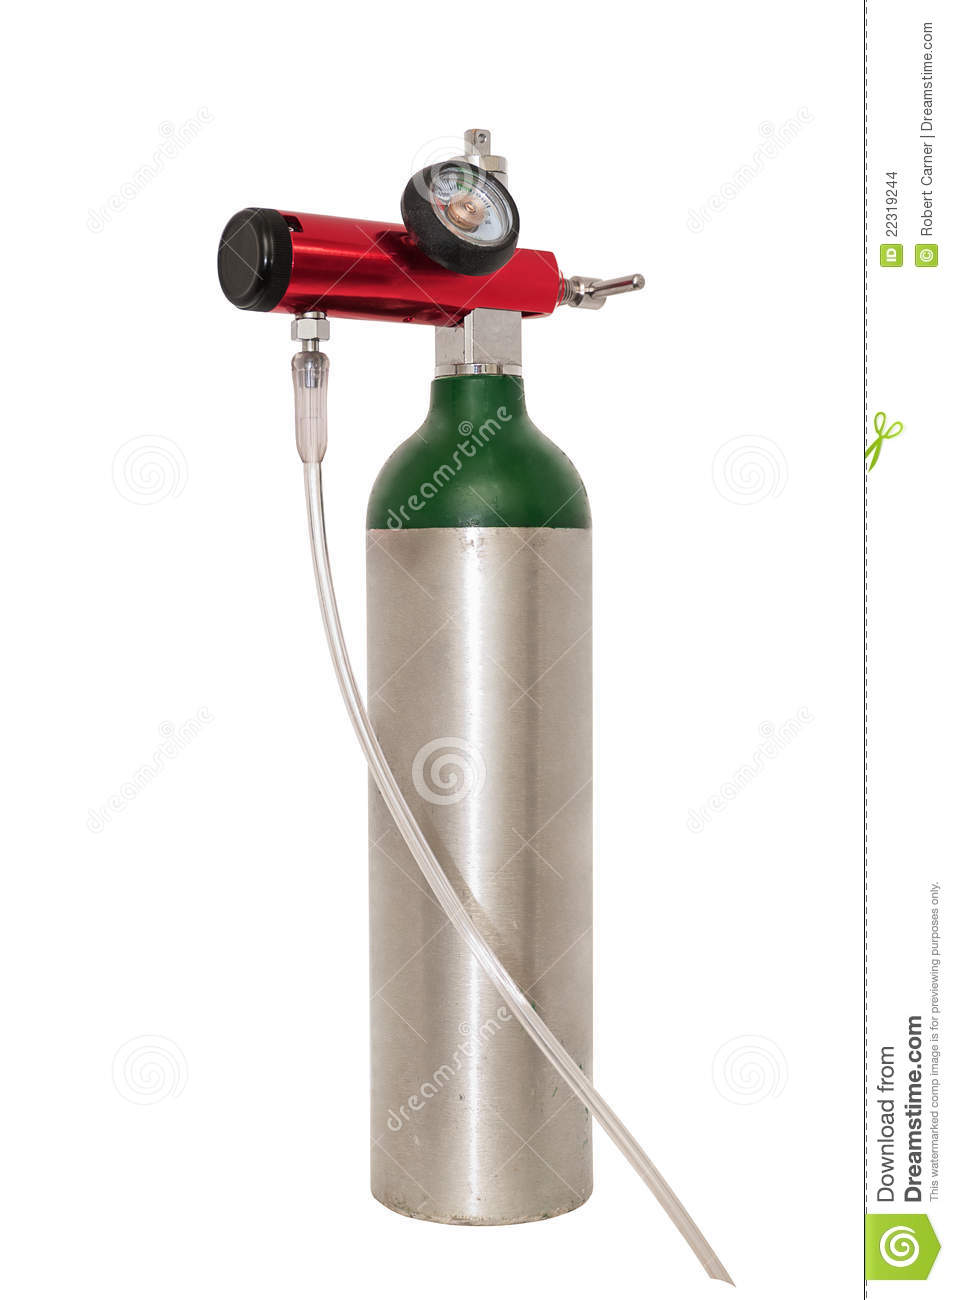 Portable Oxygen Cylinder For Medical Use Stock Photo